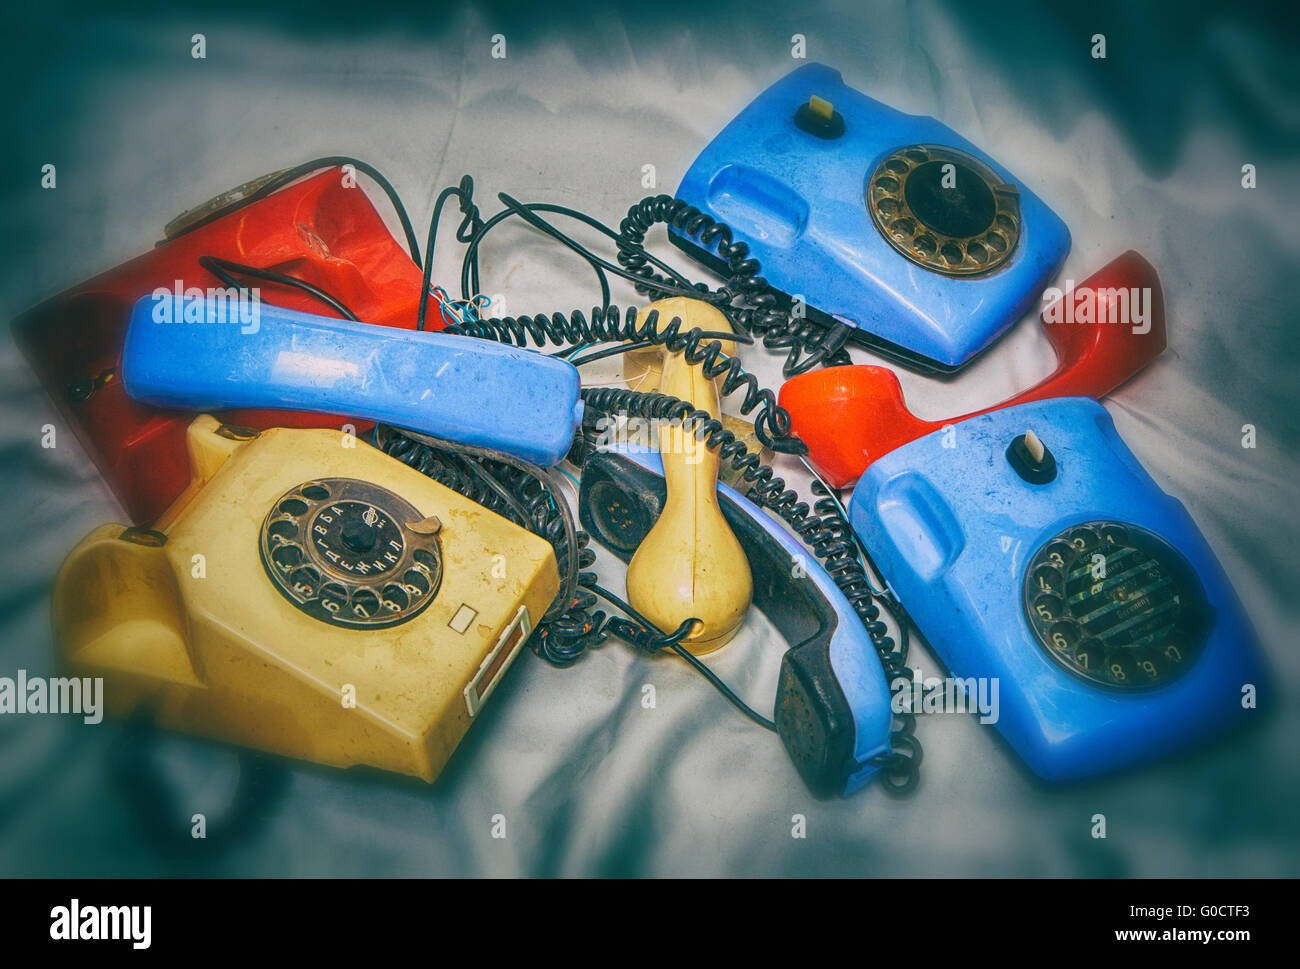 old broken phones, photo in old style image. - Stock Image